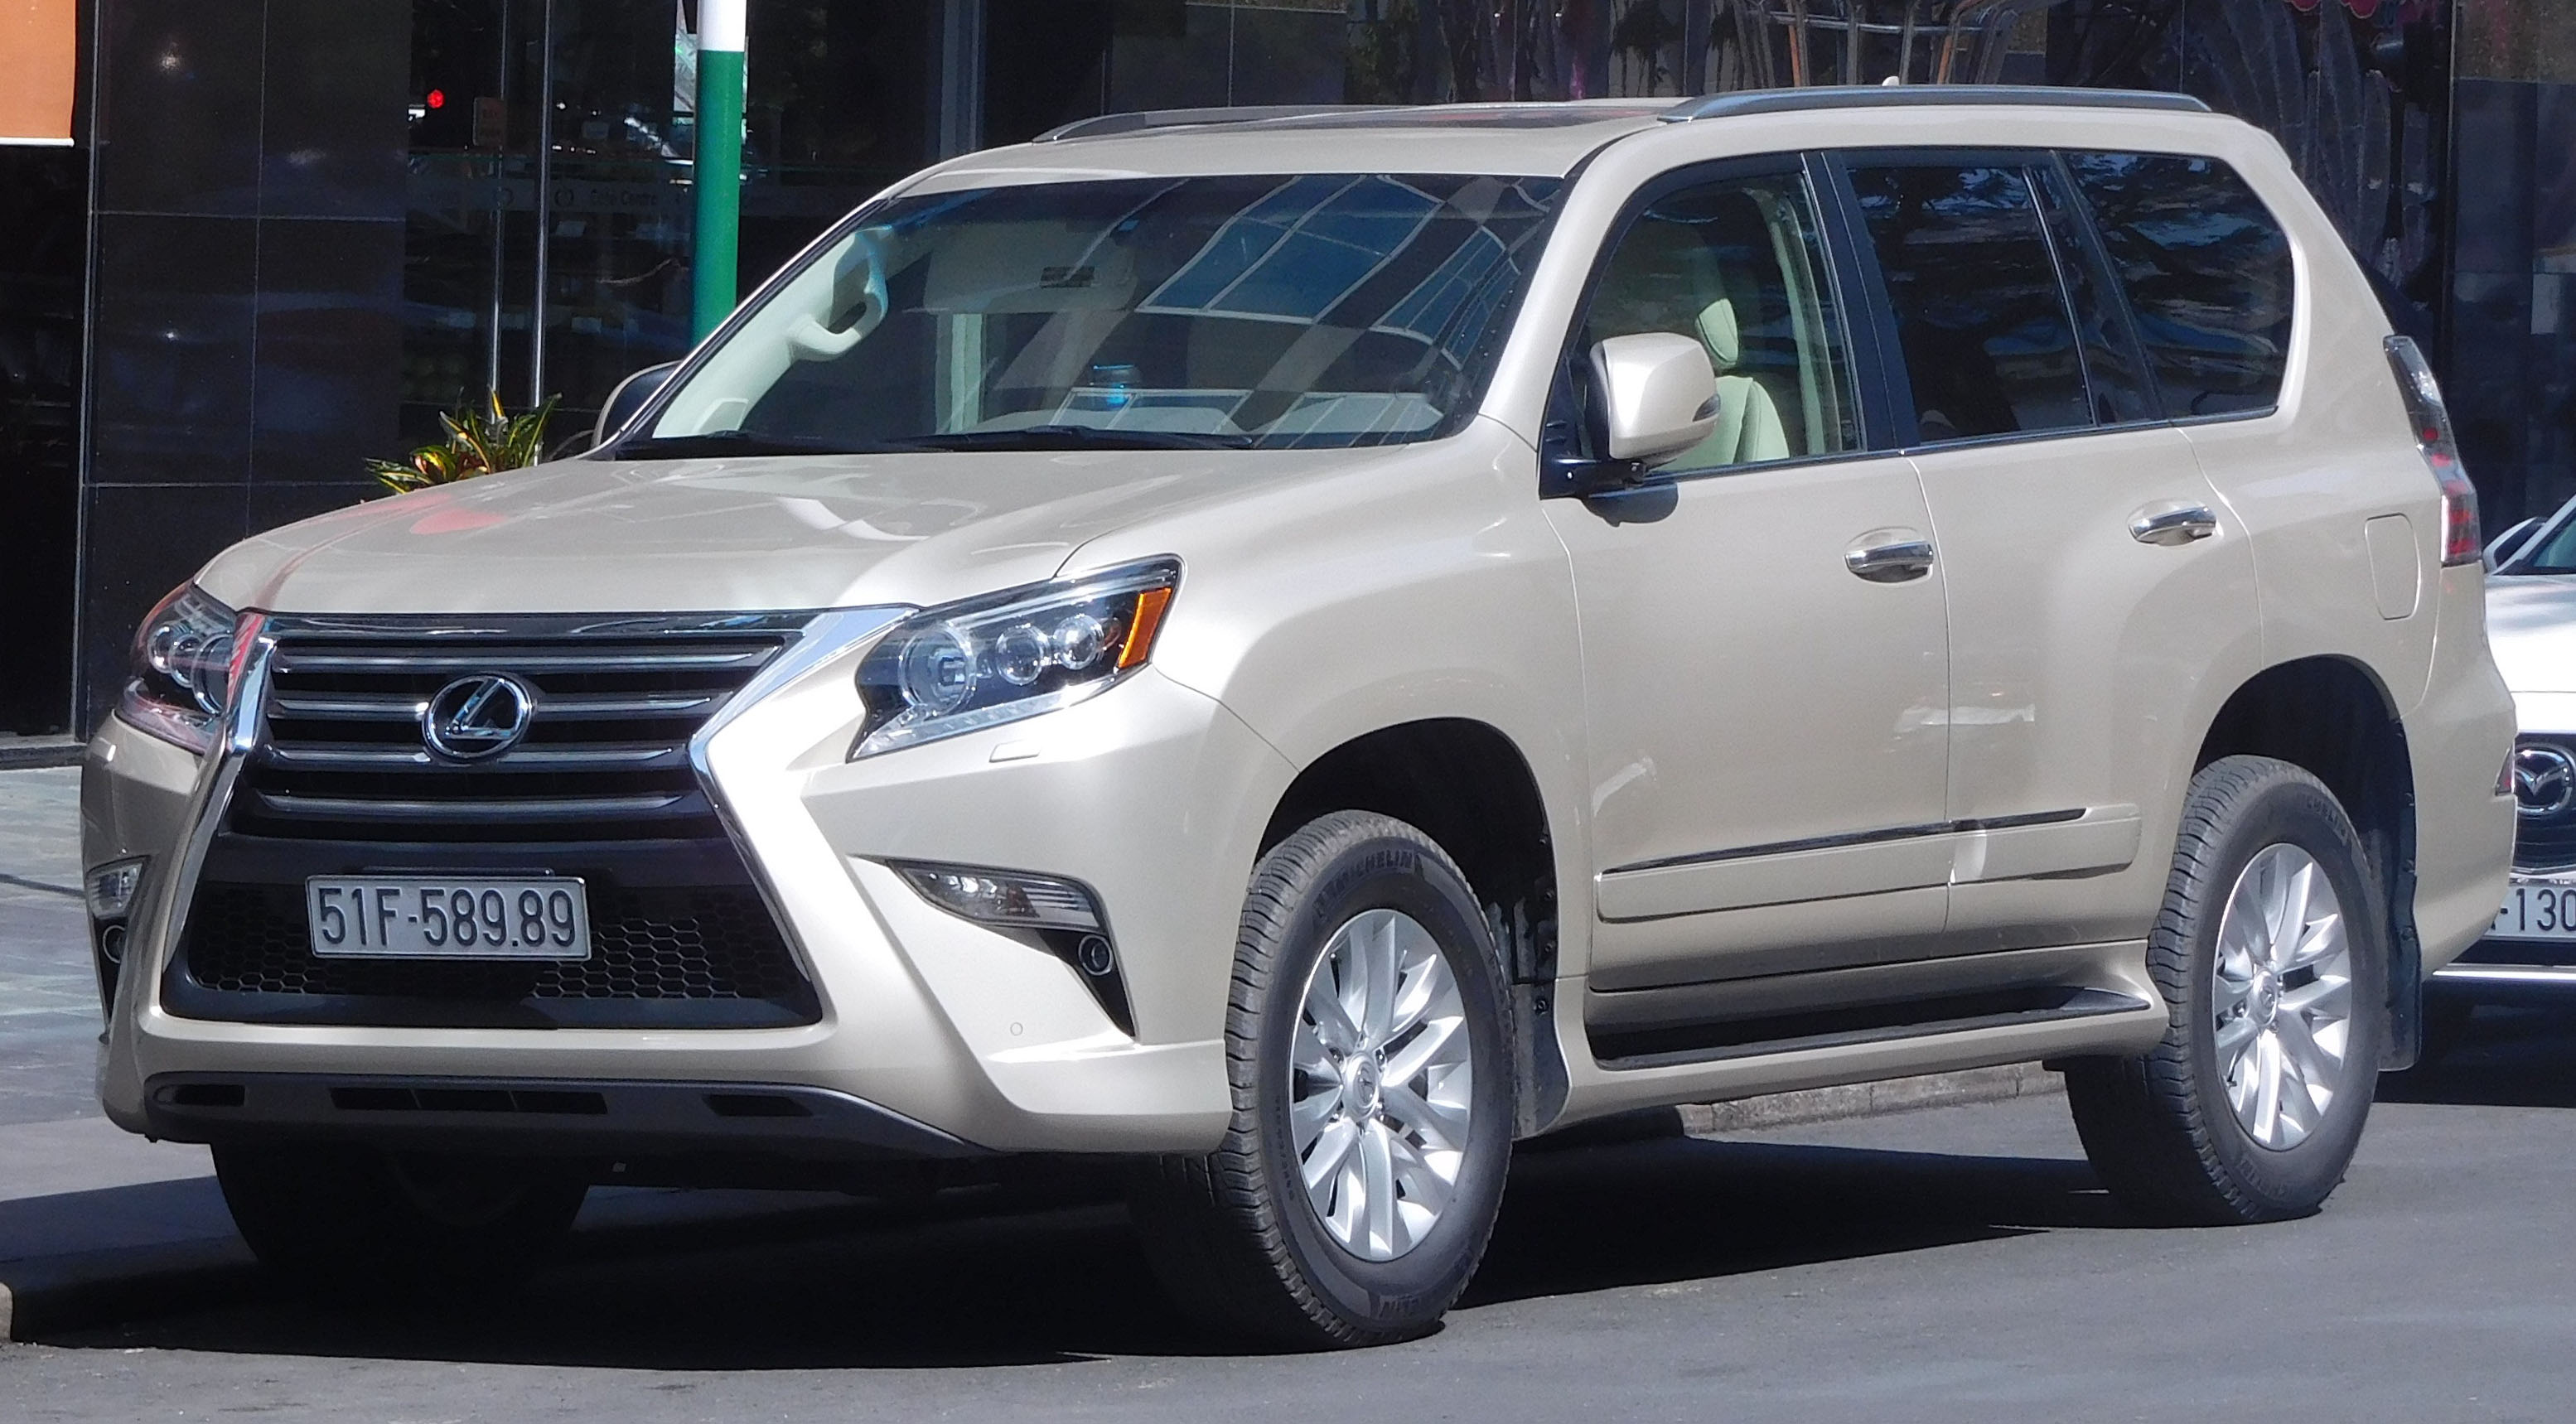 Lexus Gs Wagon >> Lexus Gx 470 2015 | 2017 - 2018 Best Cars Reviews